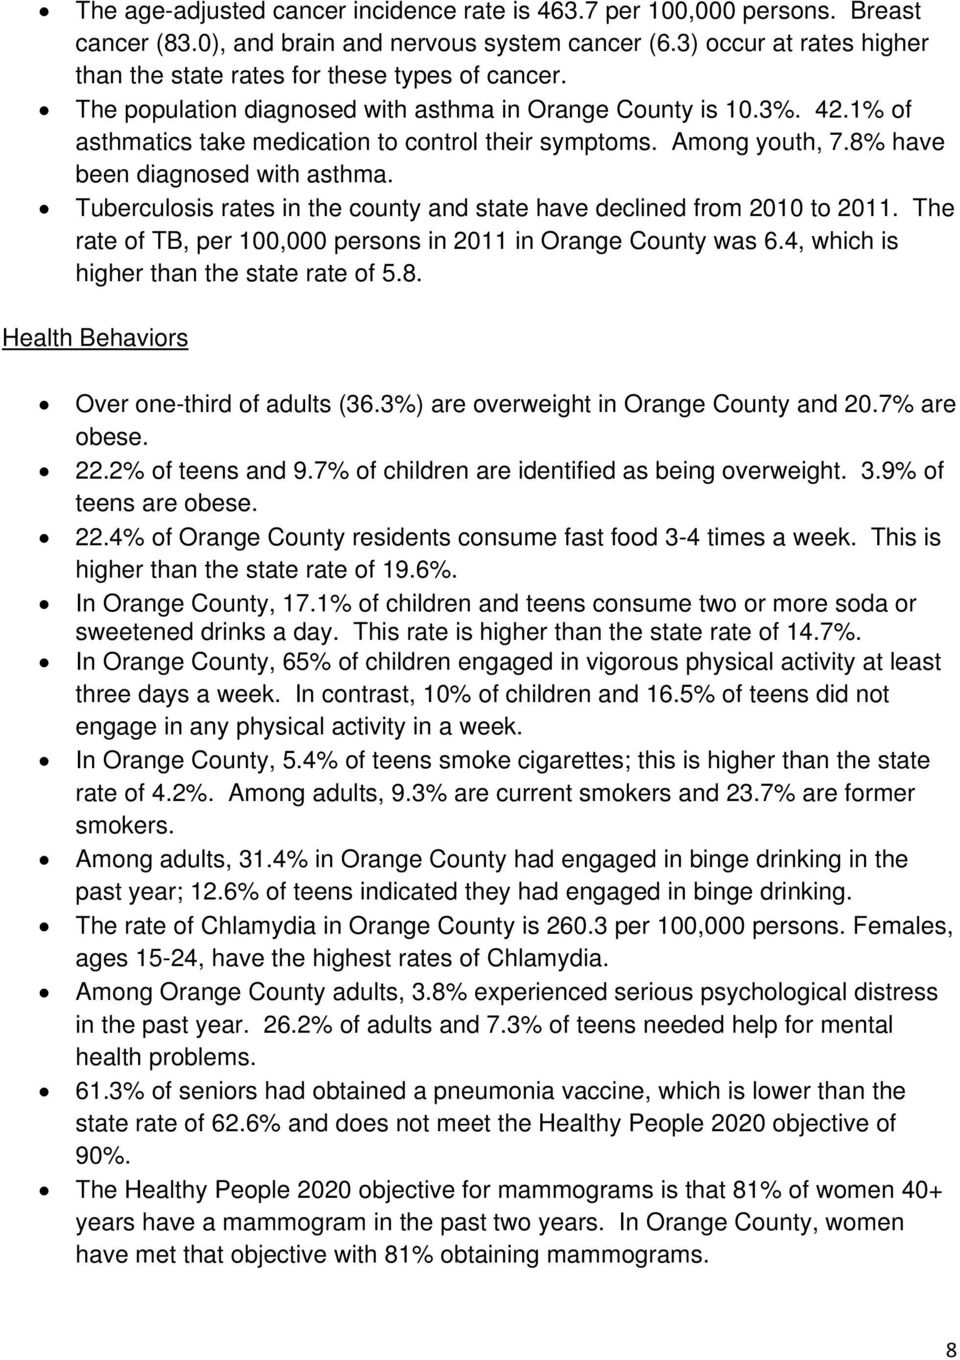 Among youth, 7.8% have been diagnosed with asthma. Tuberculosis rates in the county and state have declined from 2010 to 2011. The rate of TB, per 100,000 persons in 2011 in Orange County was 6.